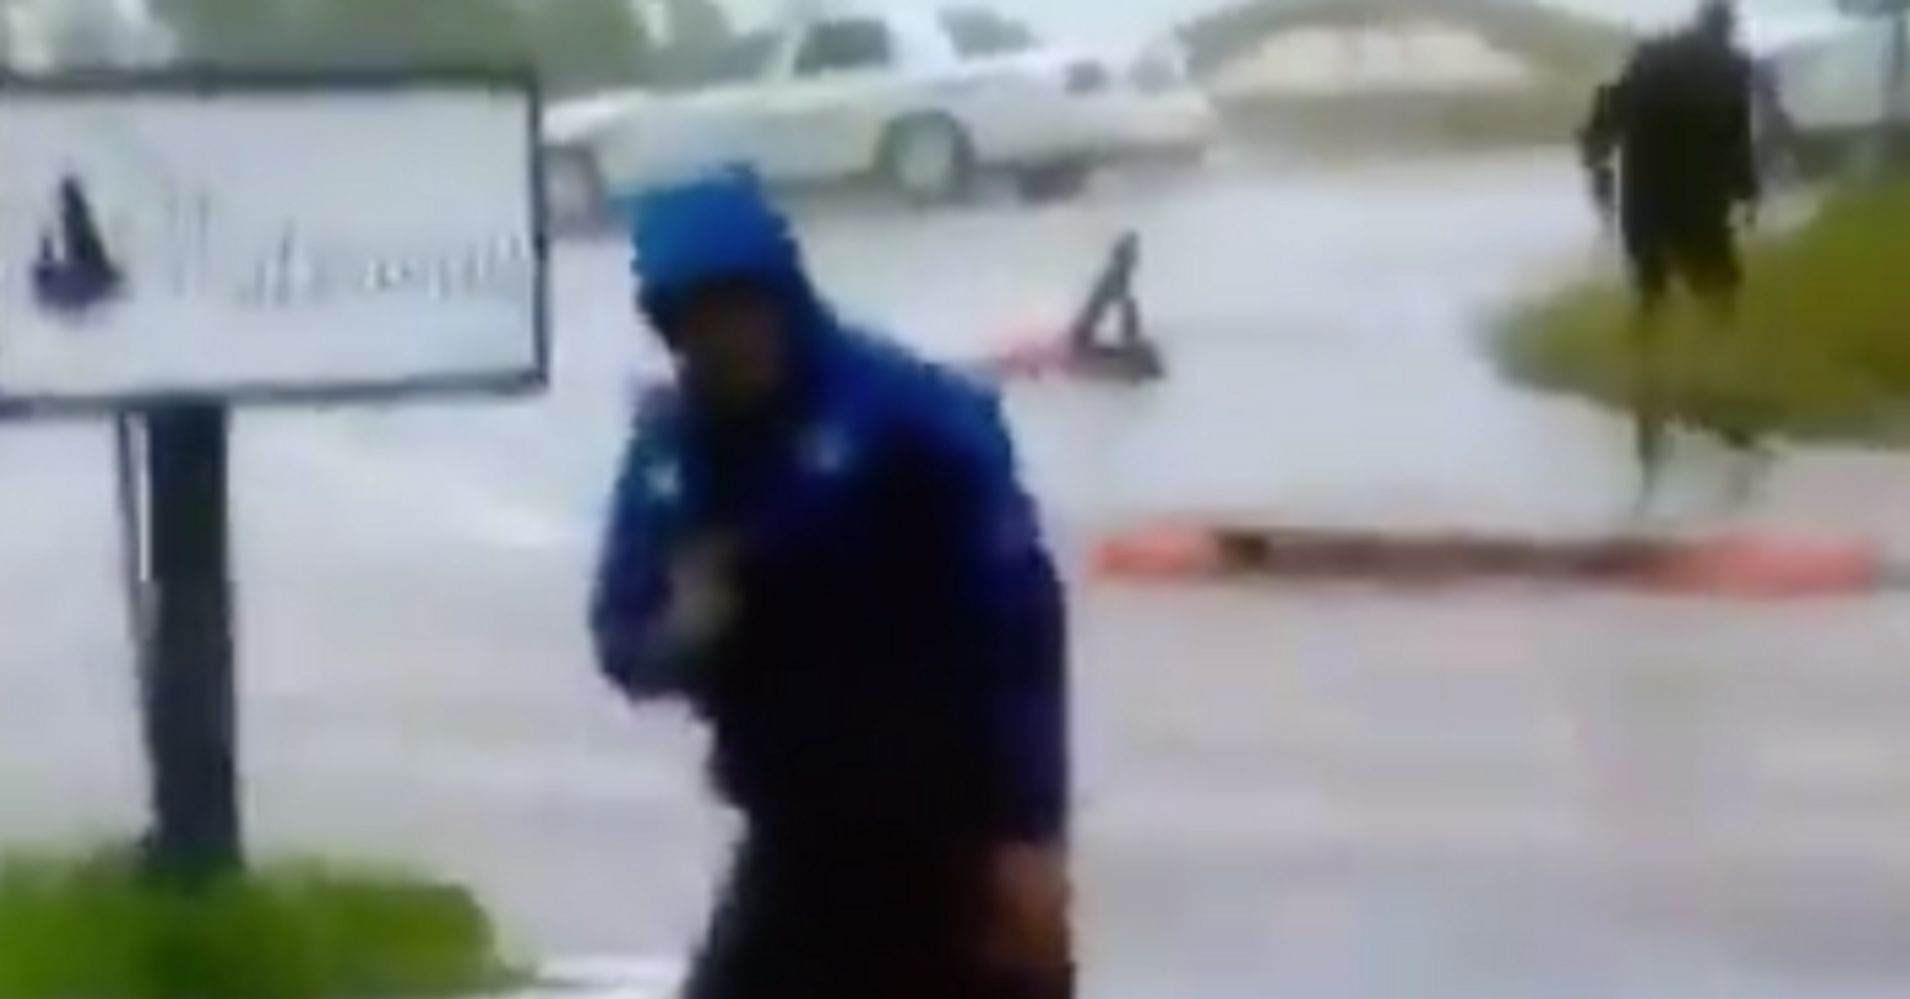 Weatherman In Wilmington Braces For Hurricane While 2 Guys Walk By As If Nothing's Wrong